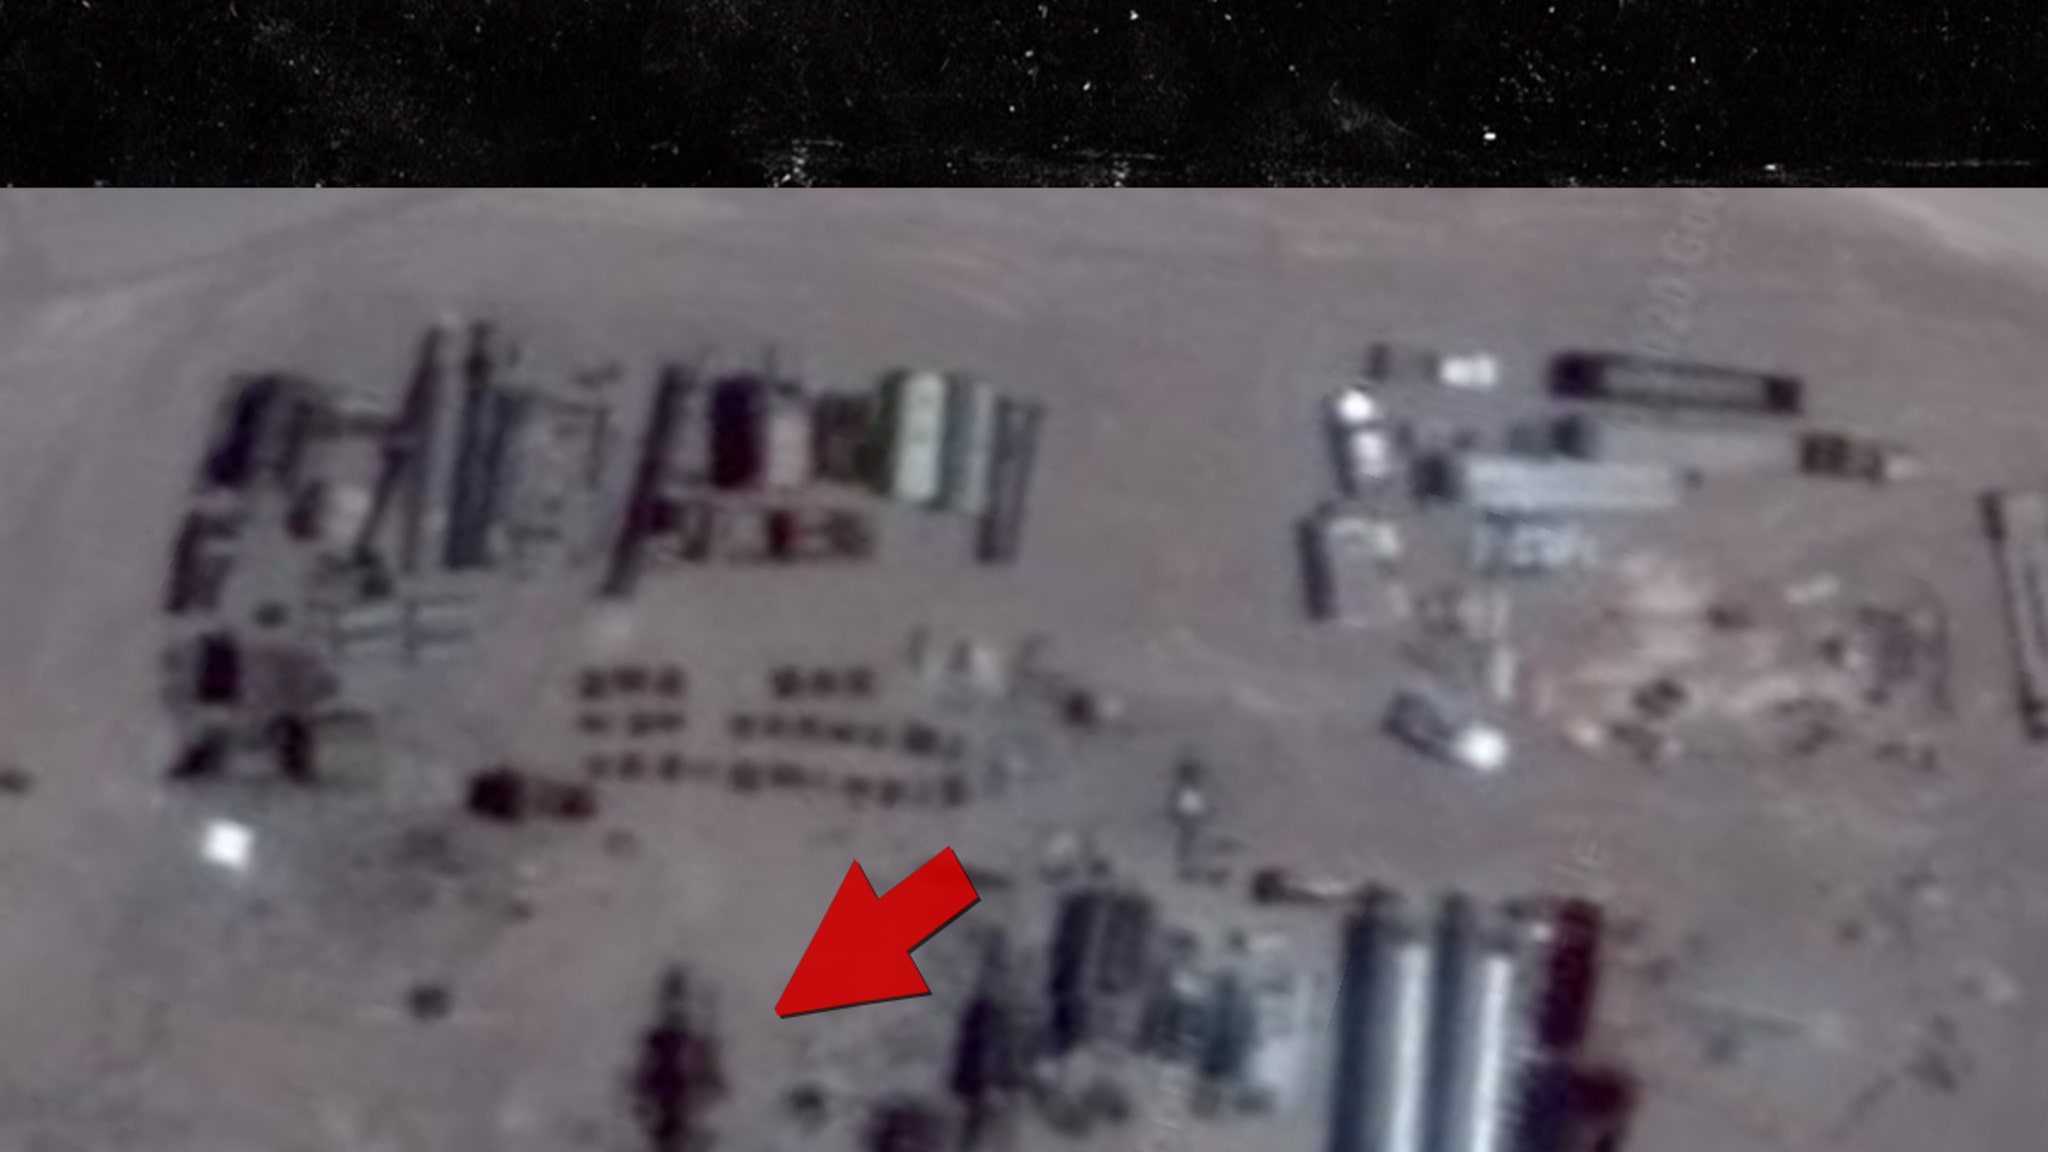 UFO 'Hunter' Major Area 51 Claim ... Giant Alien Robot is Being Built!!!